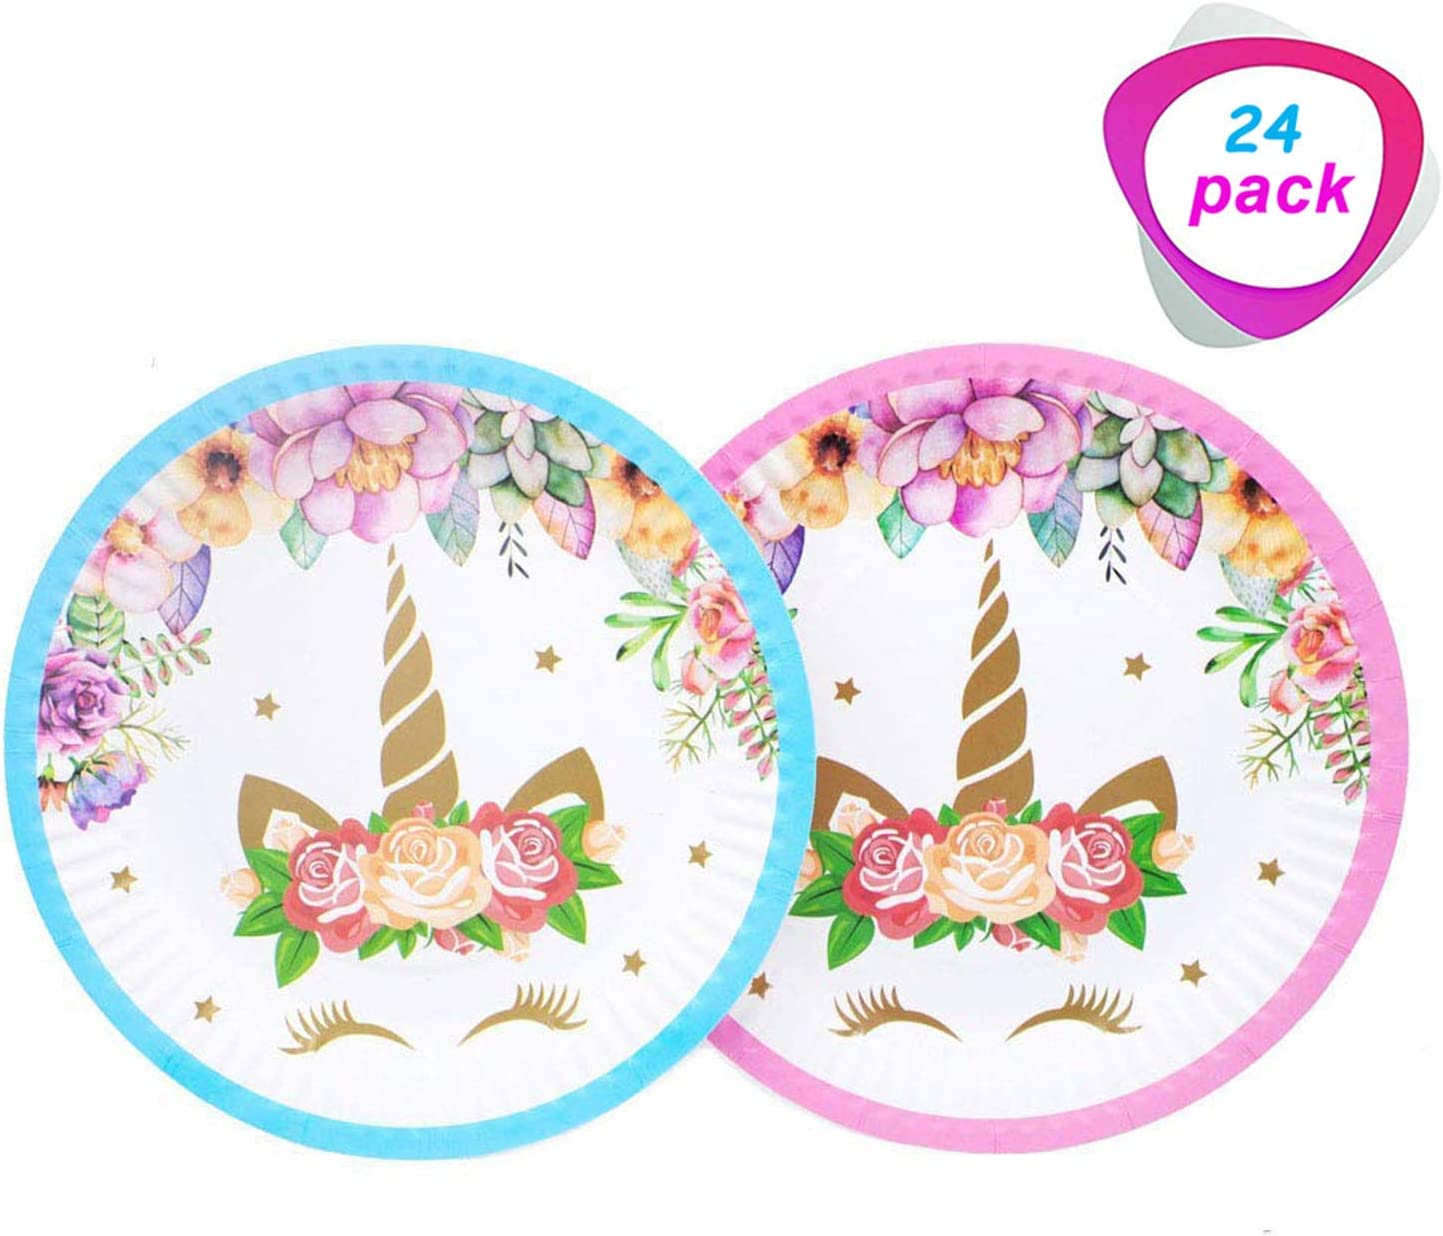 Unicorn Paper Plates for 24 Guests